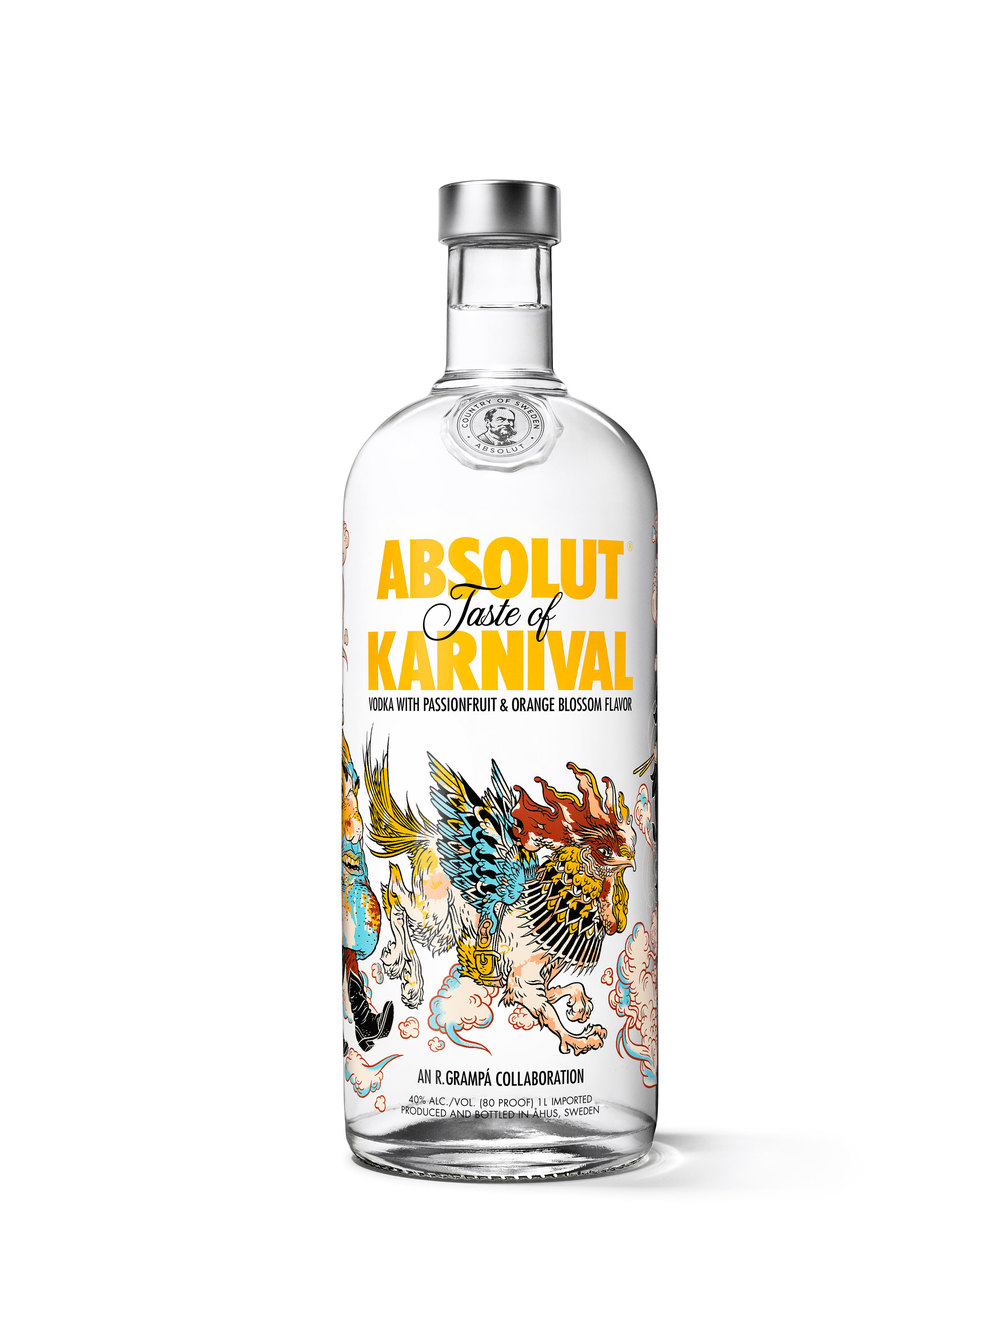 Absolut Karnival The Dieline Packaging Amp Branding